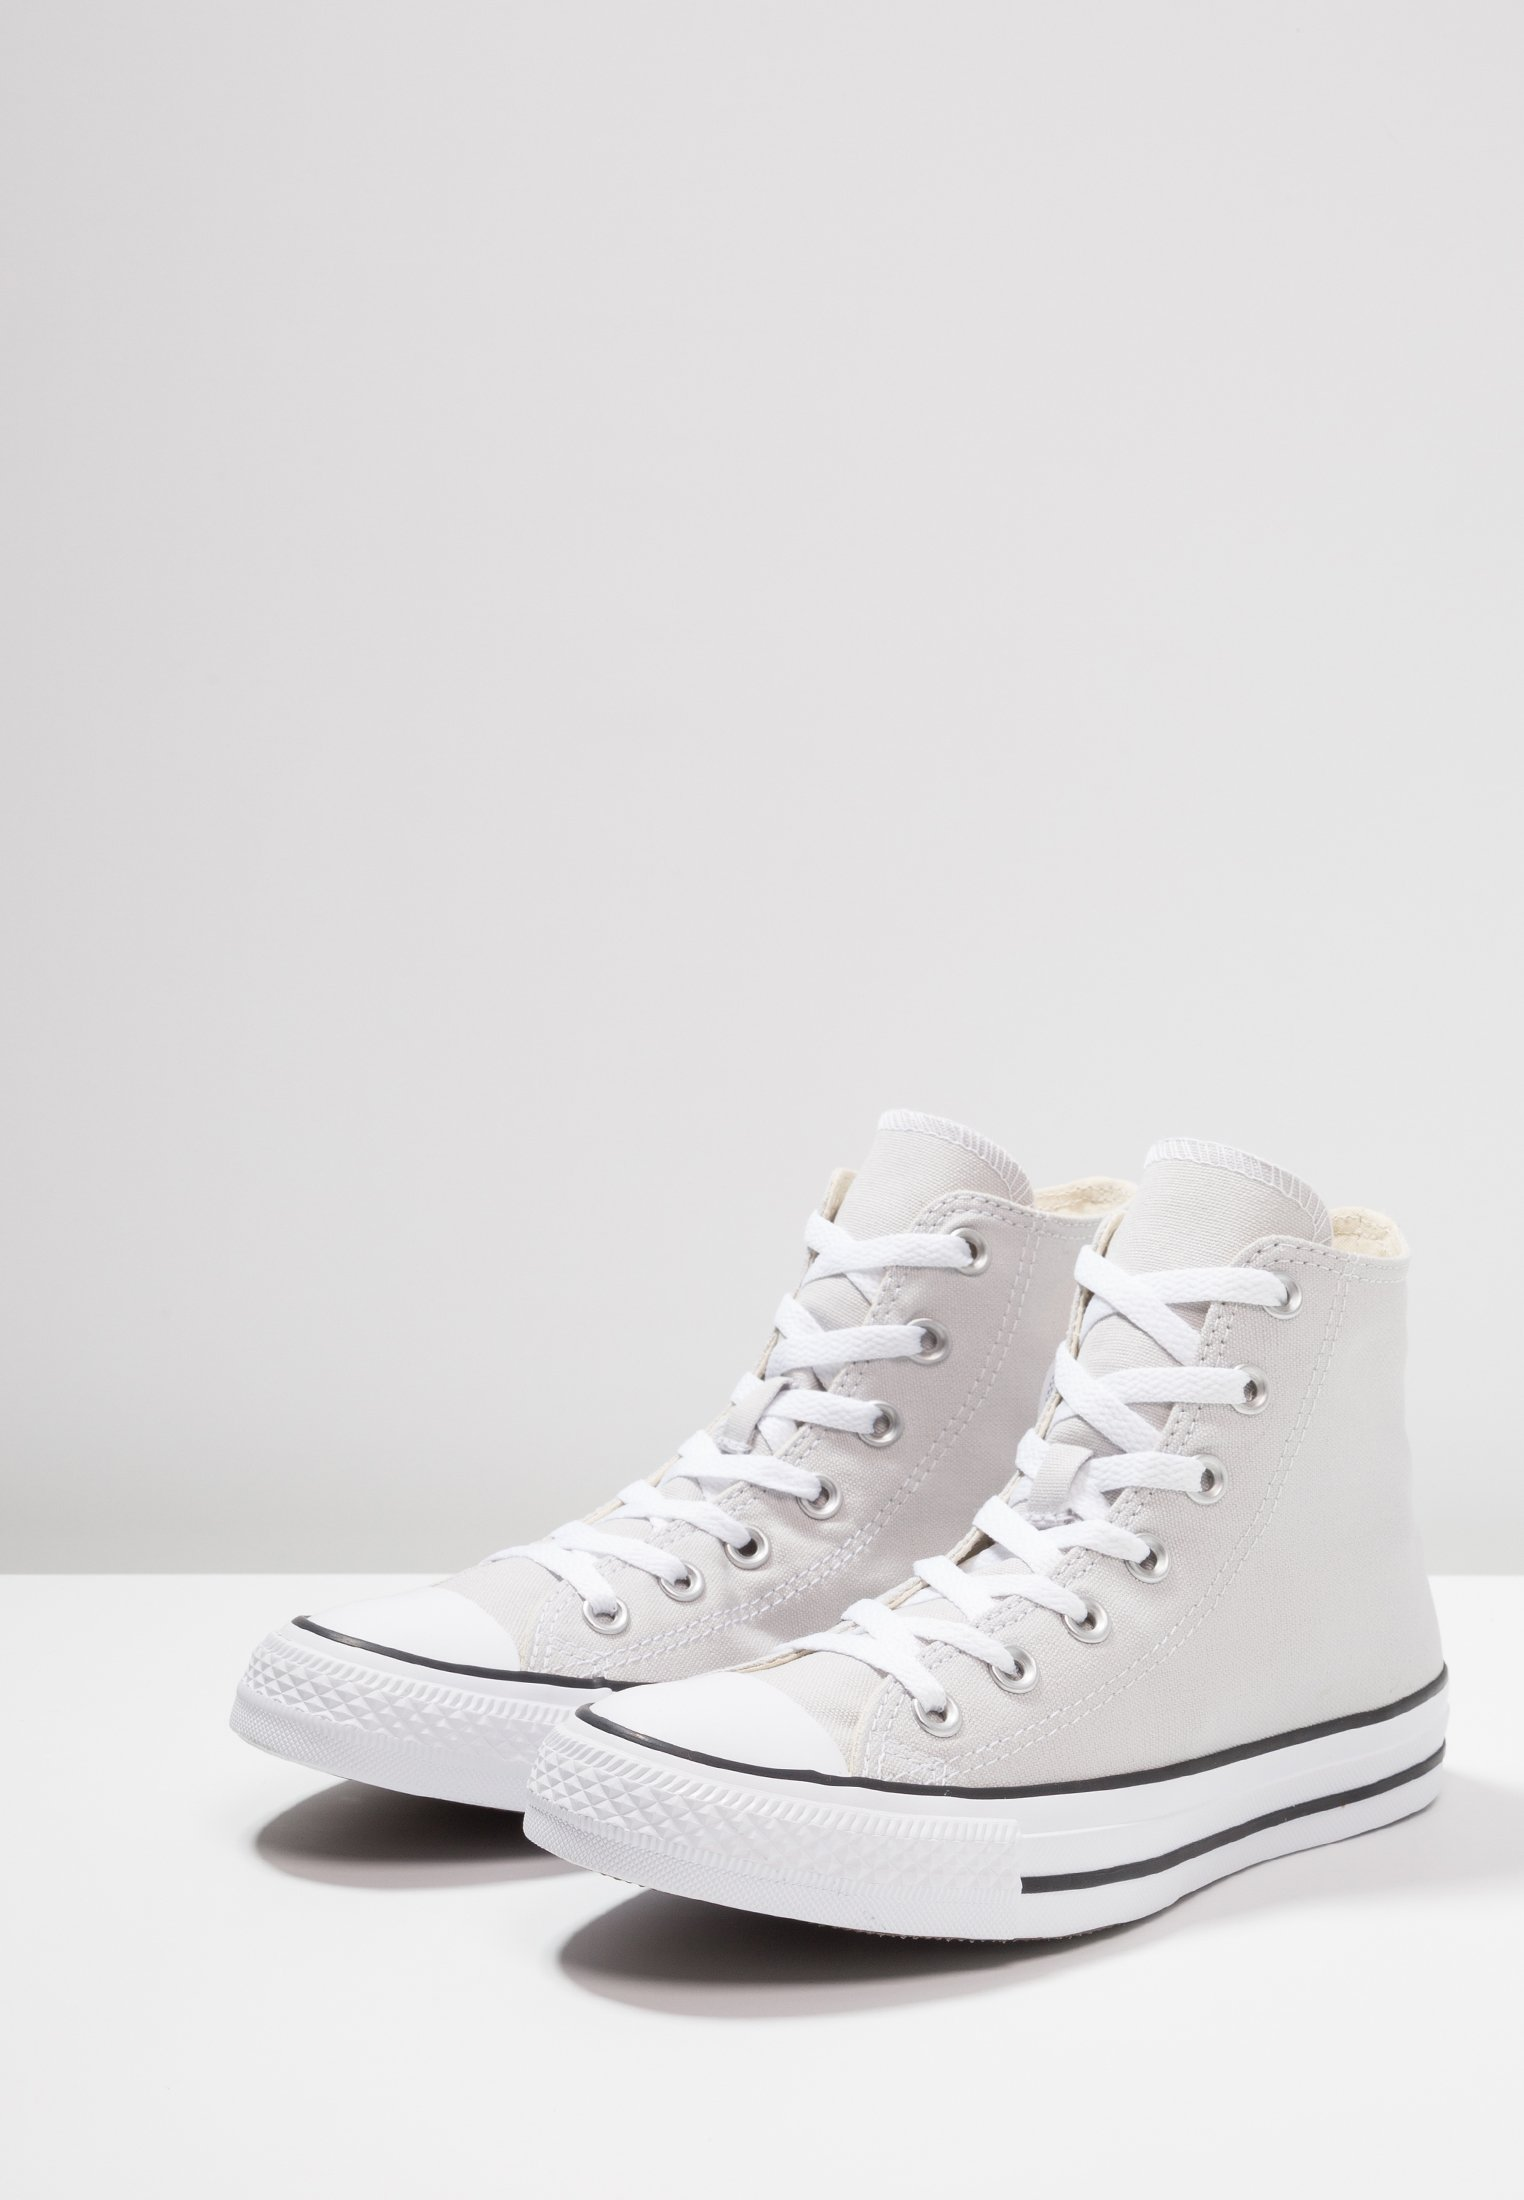 Converse Chuck Taylor All Star Hi - Sneaker High Mouse Grey Black Friday